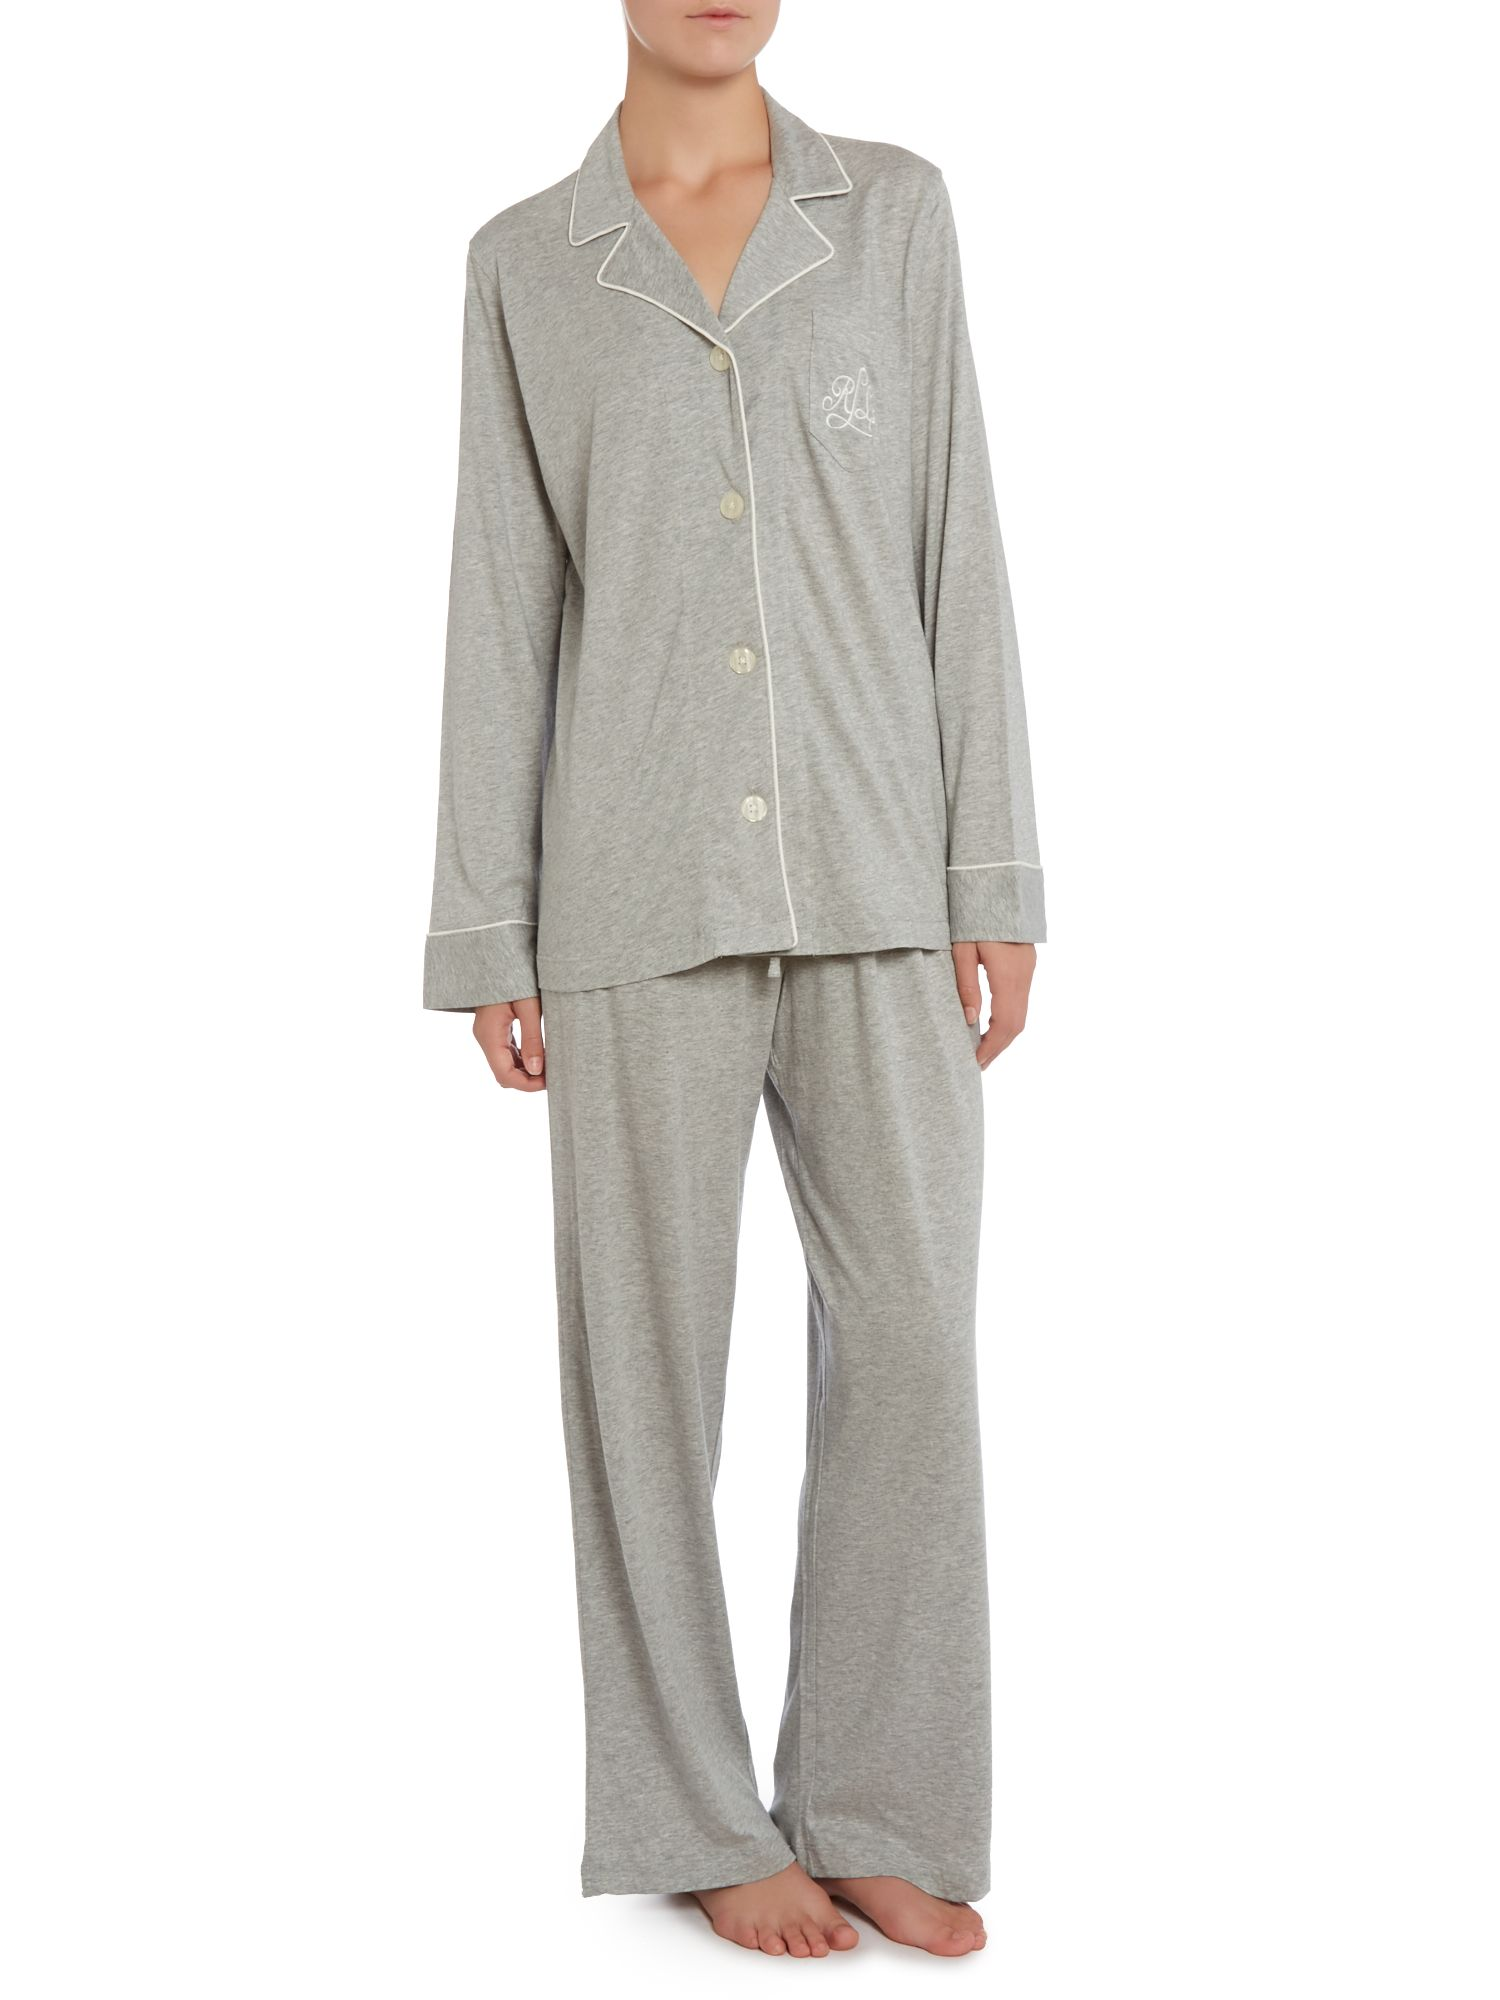 Long sleeved classic notch collar pyjama set